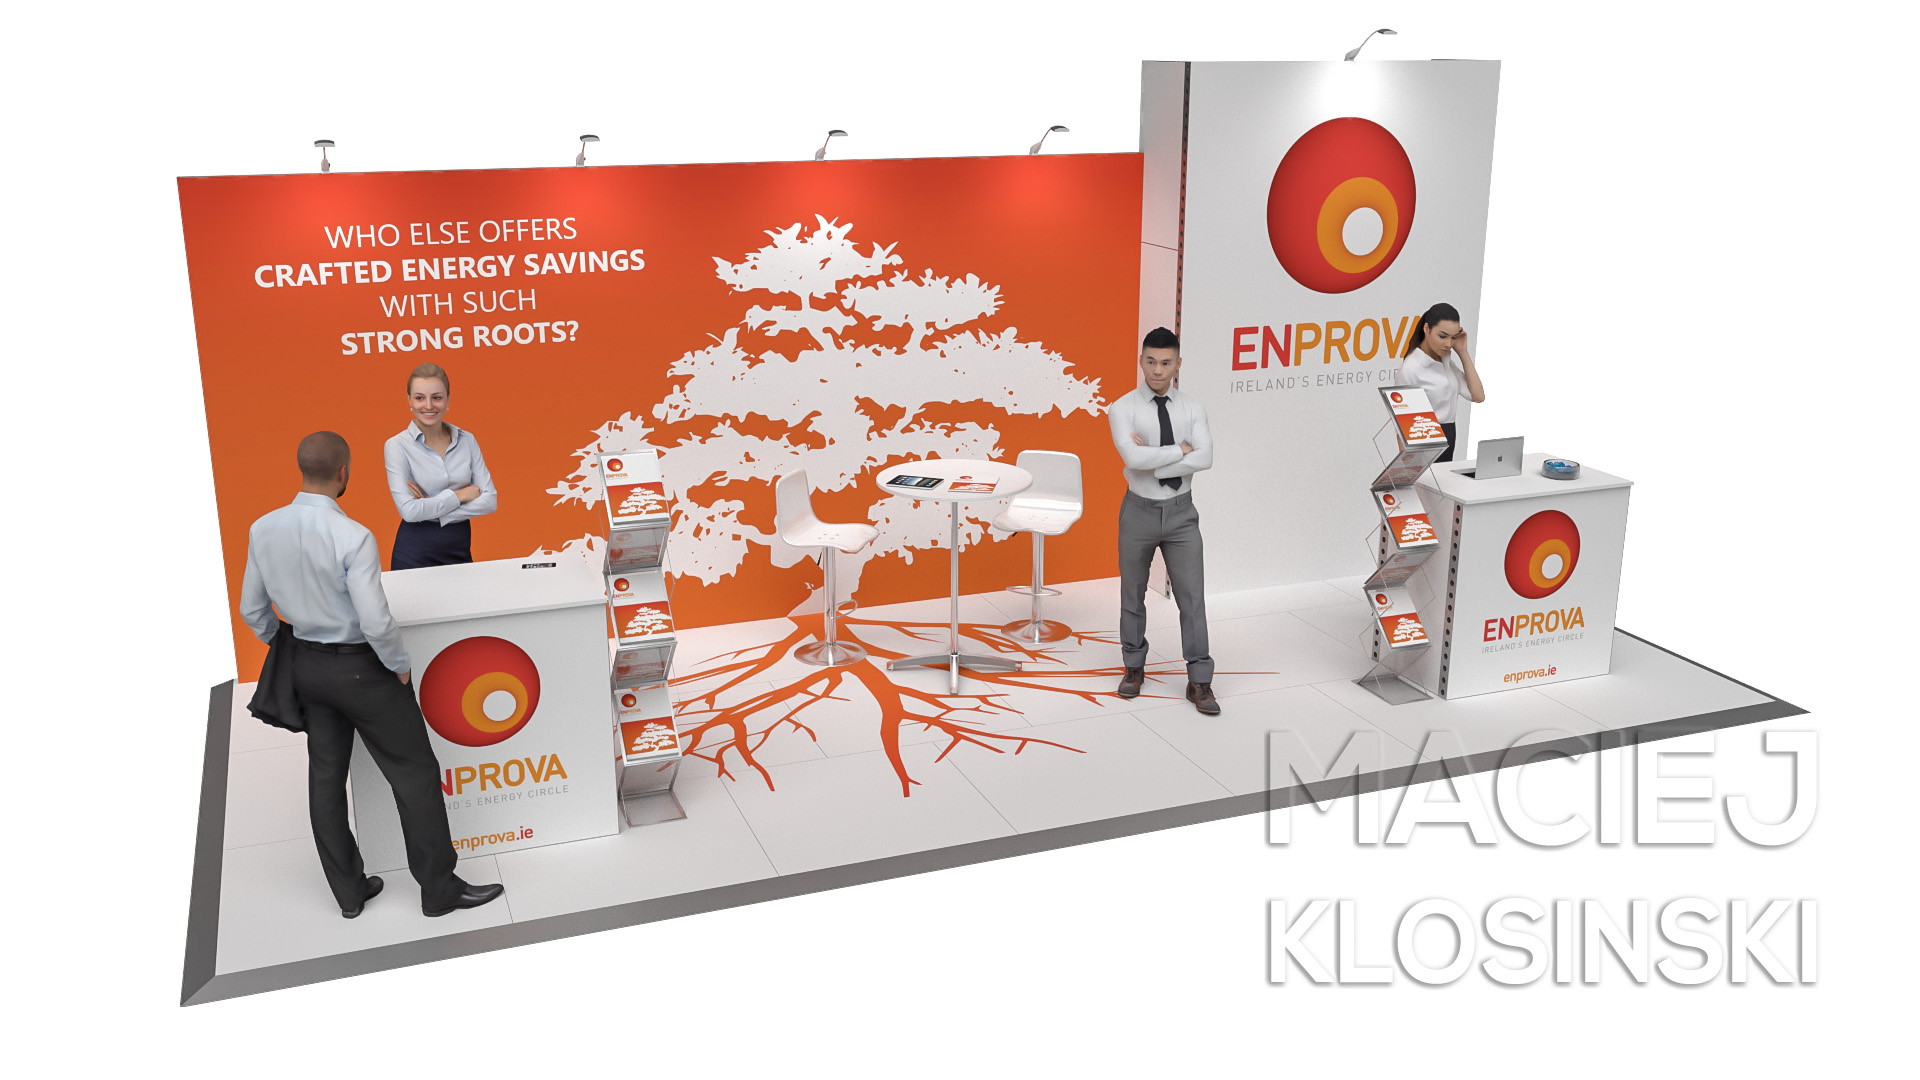 Enprova at Energy Show 2018